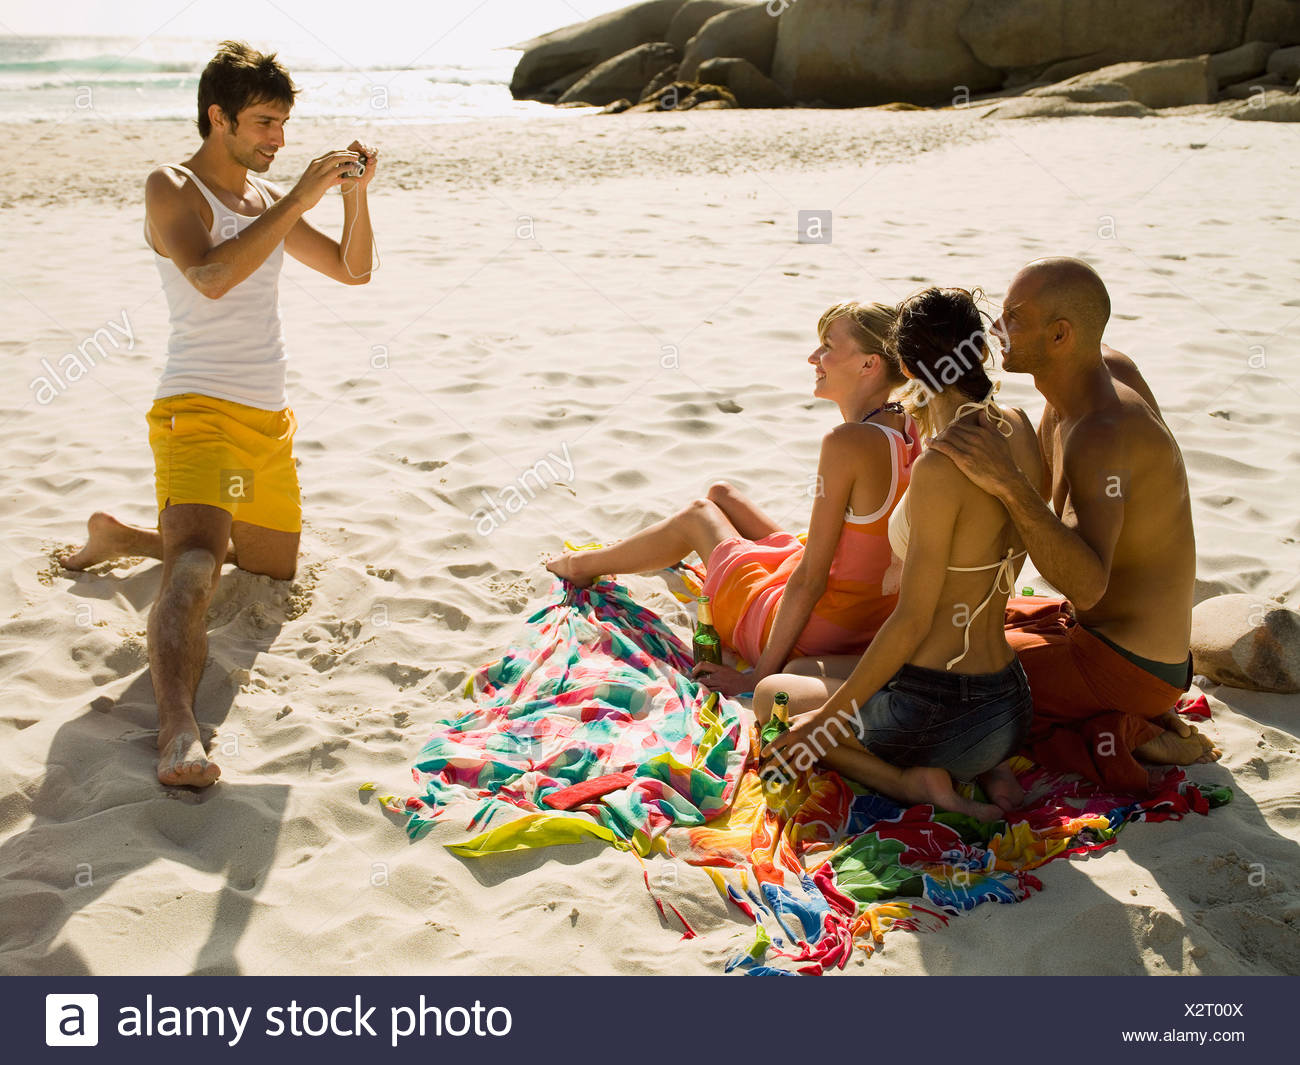 Man photographing his friends on the beach - Stock Image